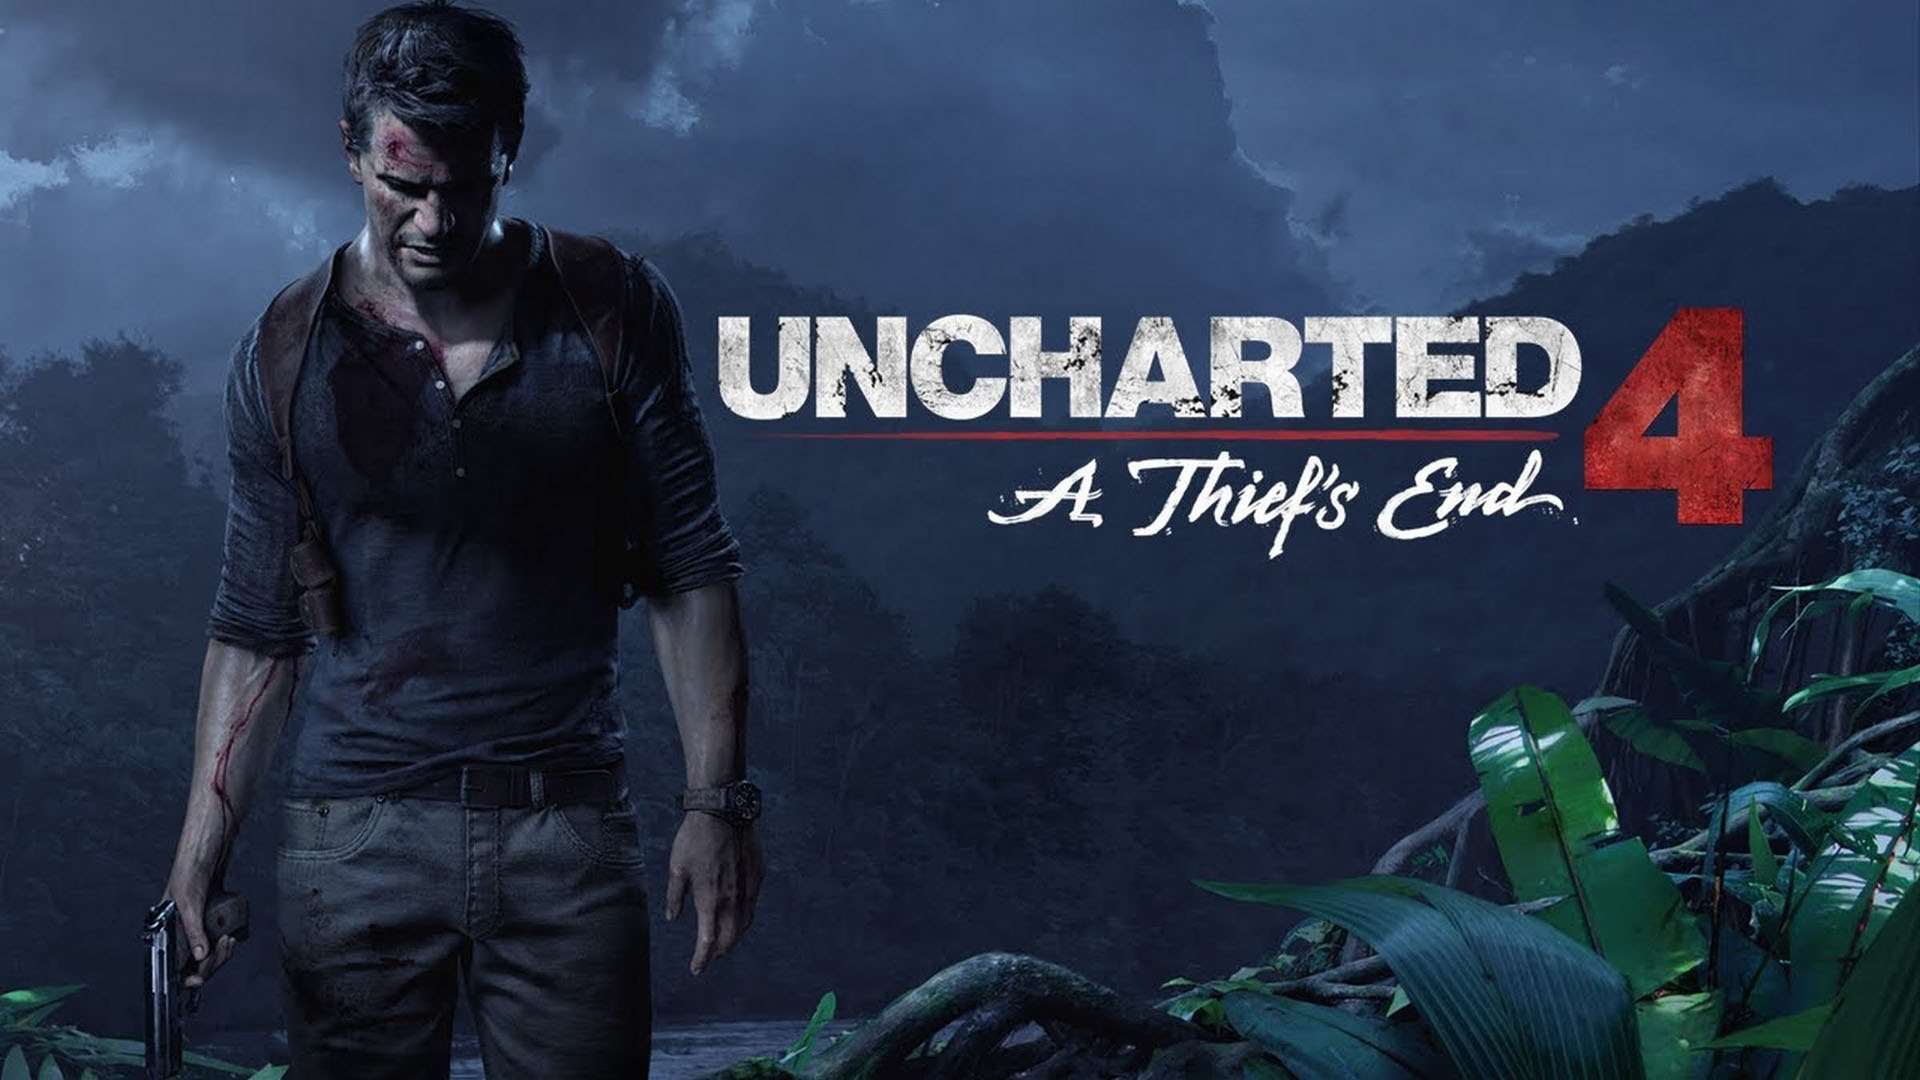 Free Download Uncharted 4 Wallpaper Hd 1920x1080 For Your